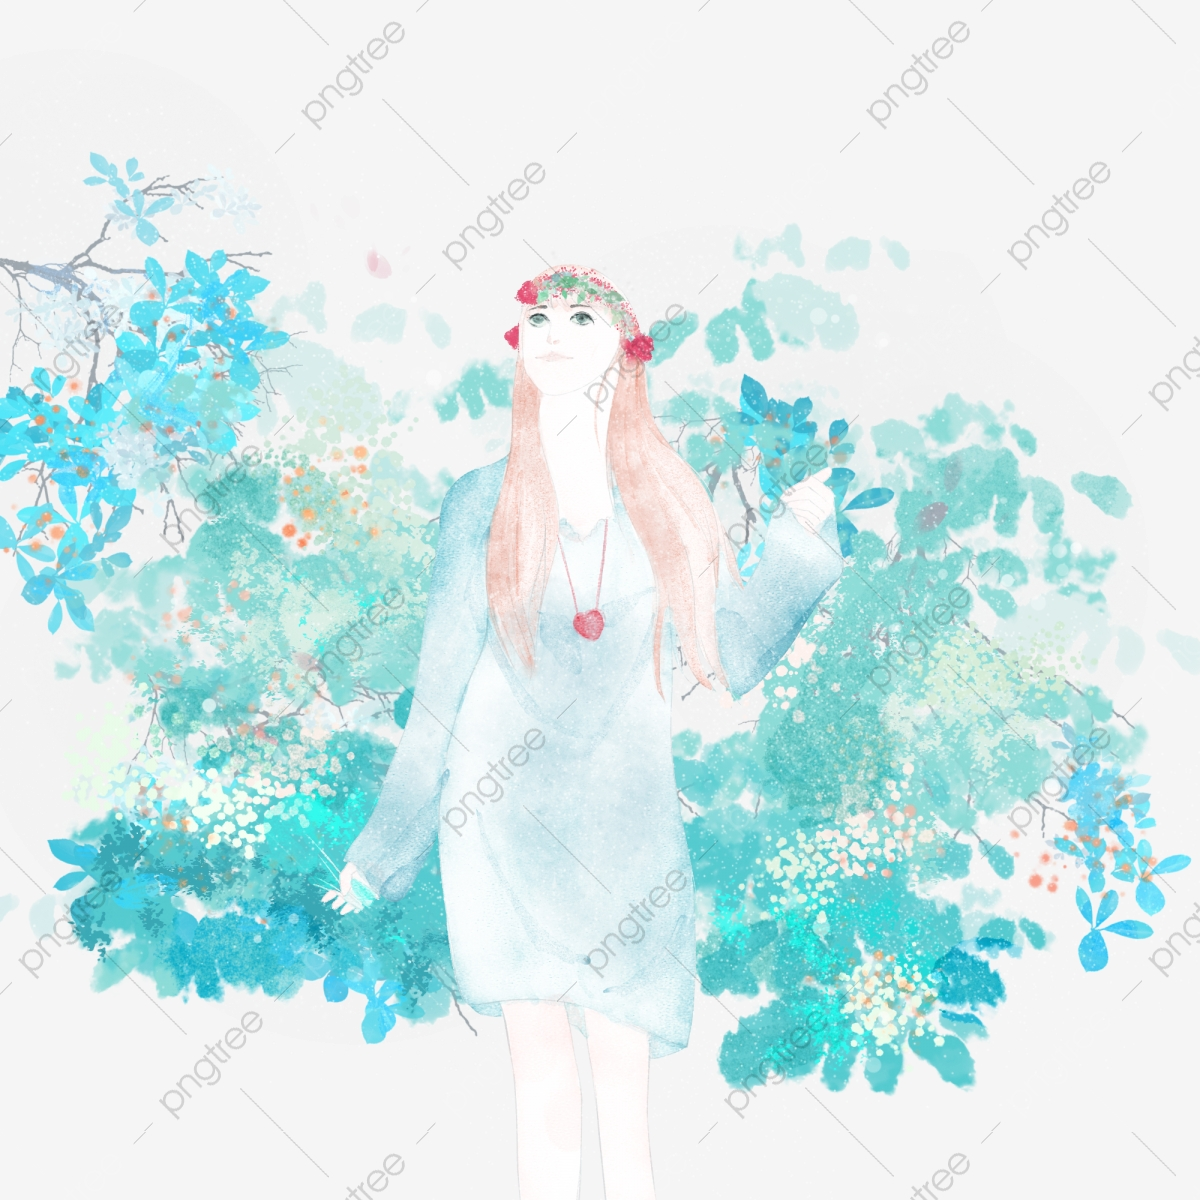 forest watercolor png images vector and psd files free download on pngtree https pngtree com freepng hand drawn watercolor girl with wreath 4458911 html